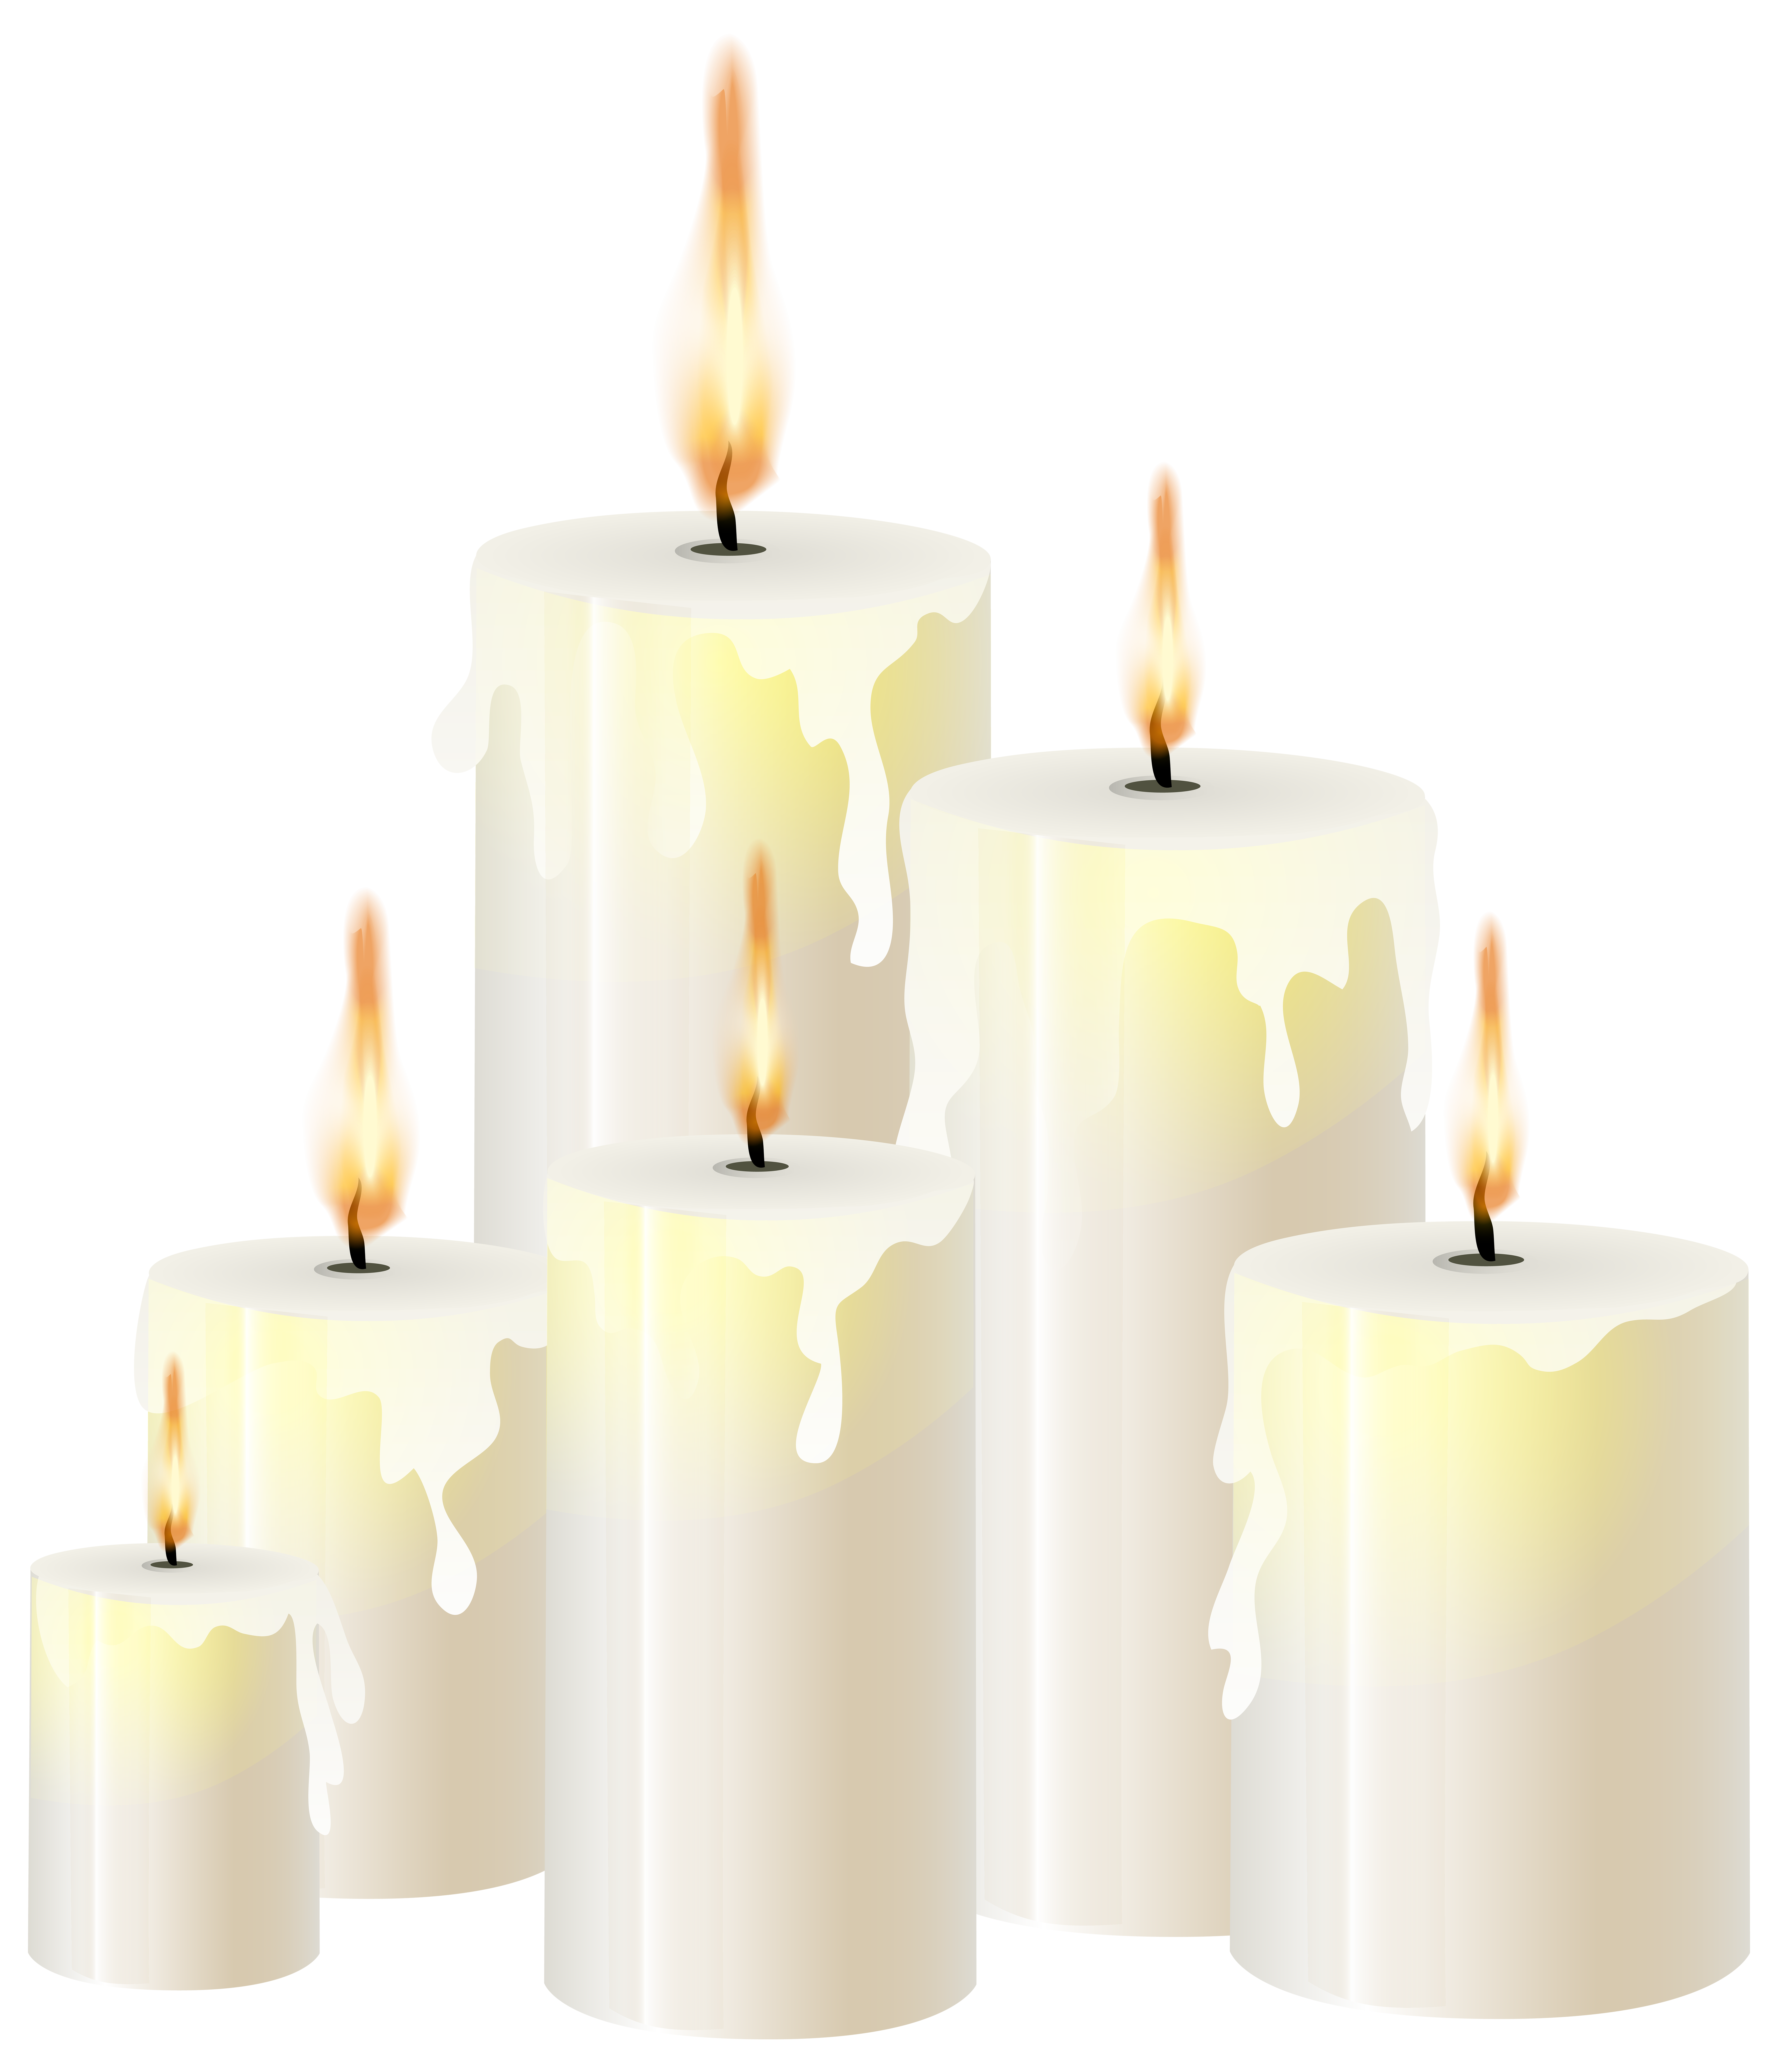 Clipart book candle. White candles png clip